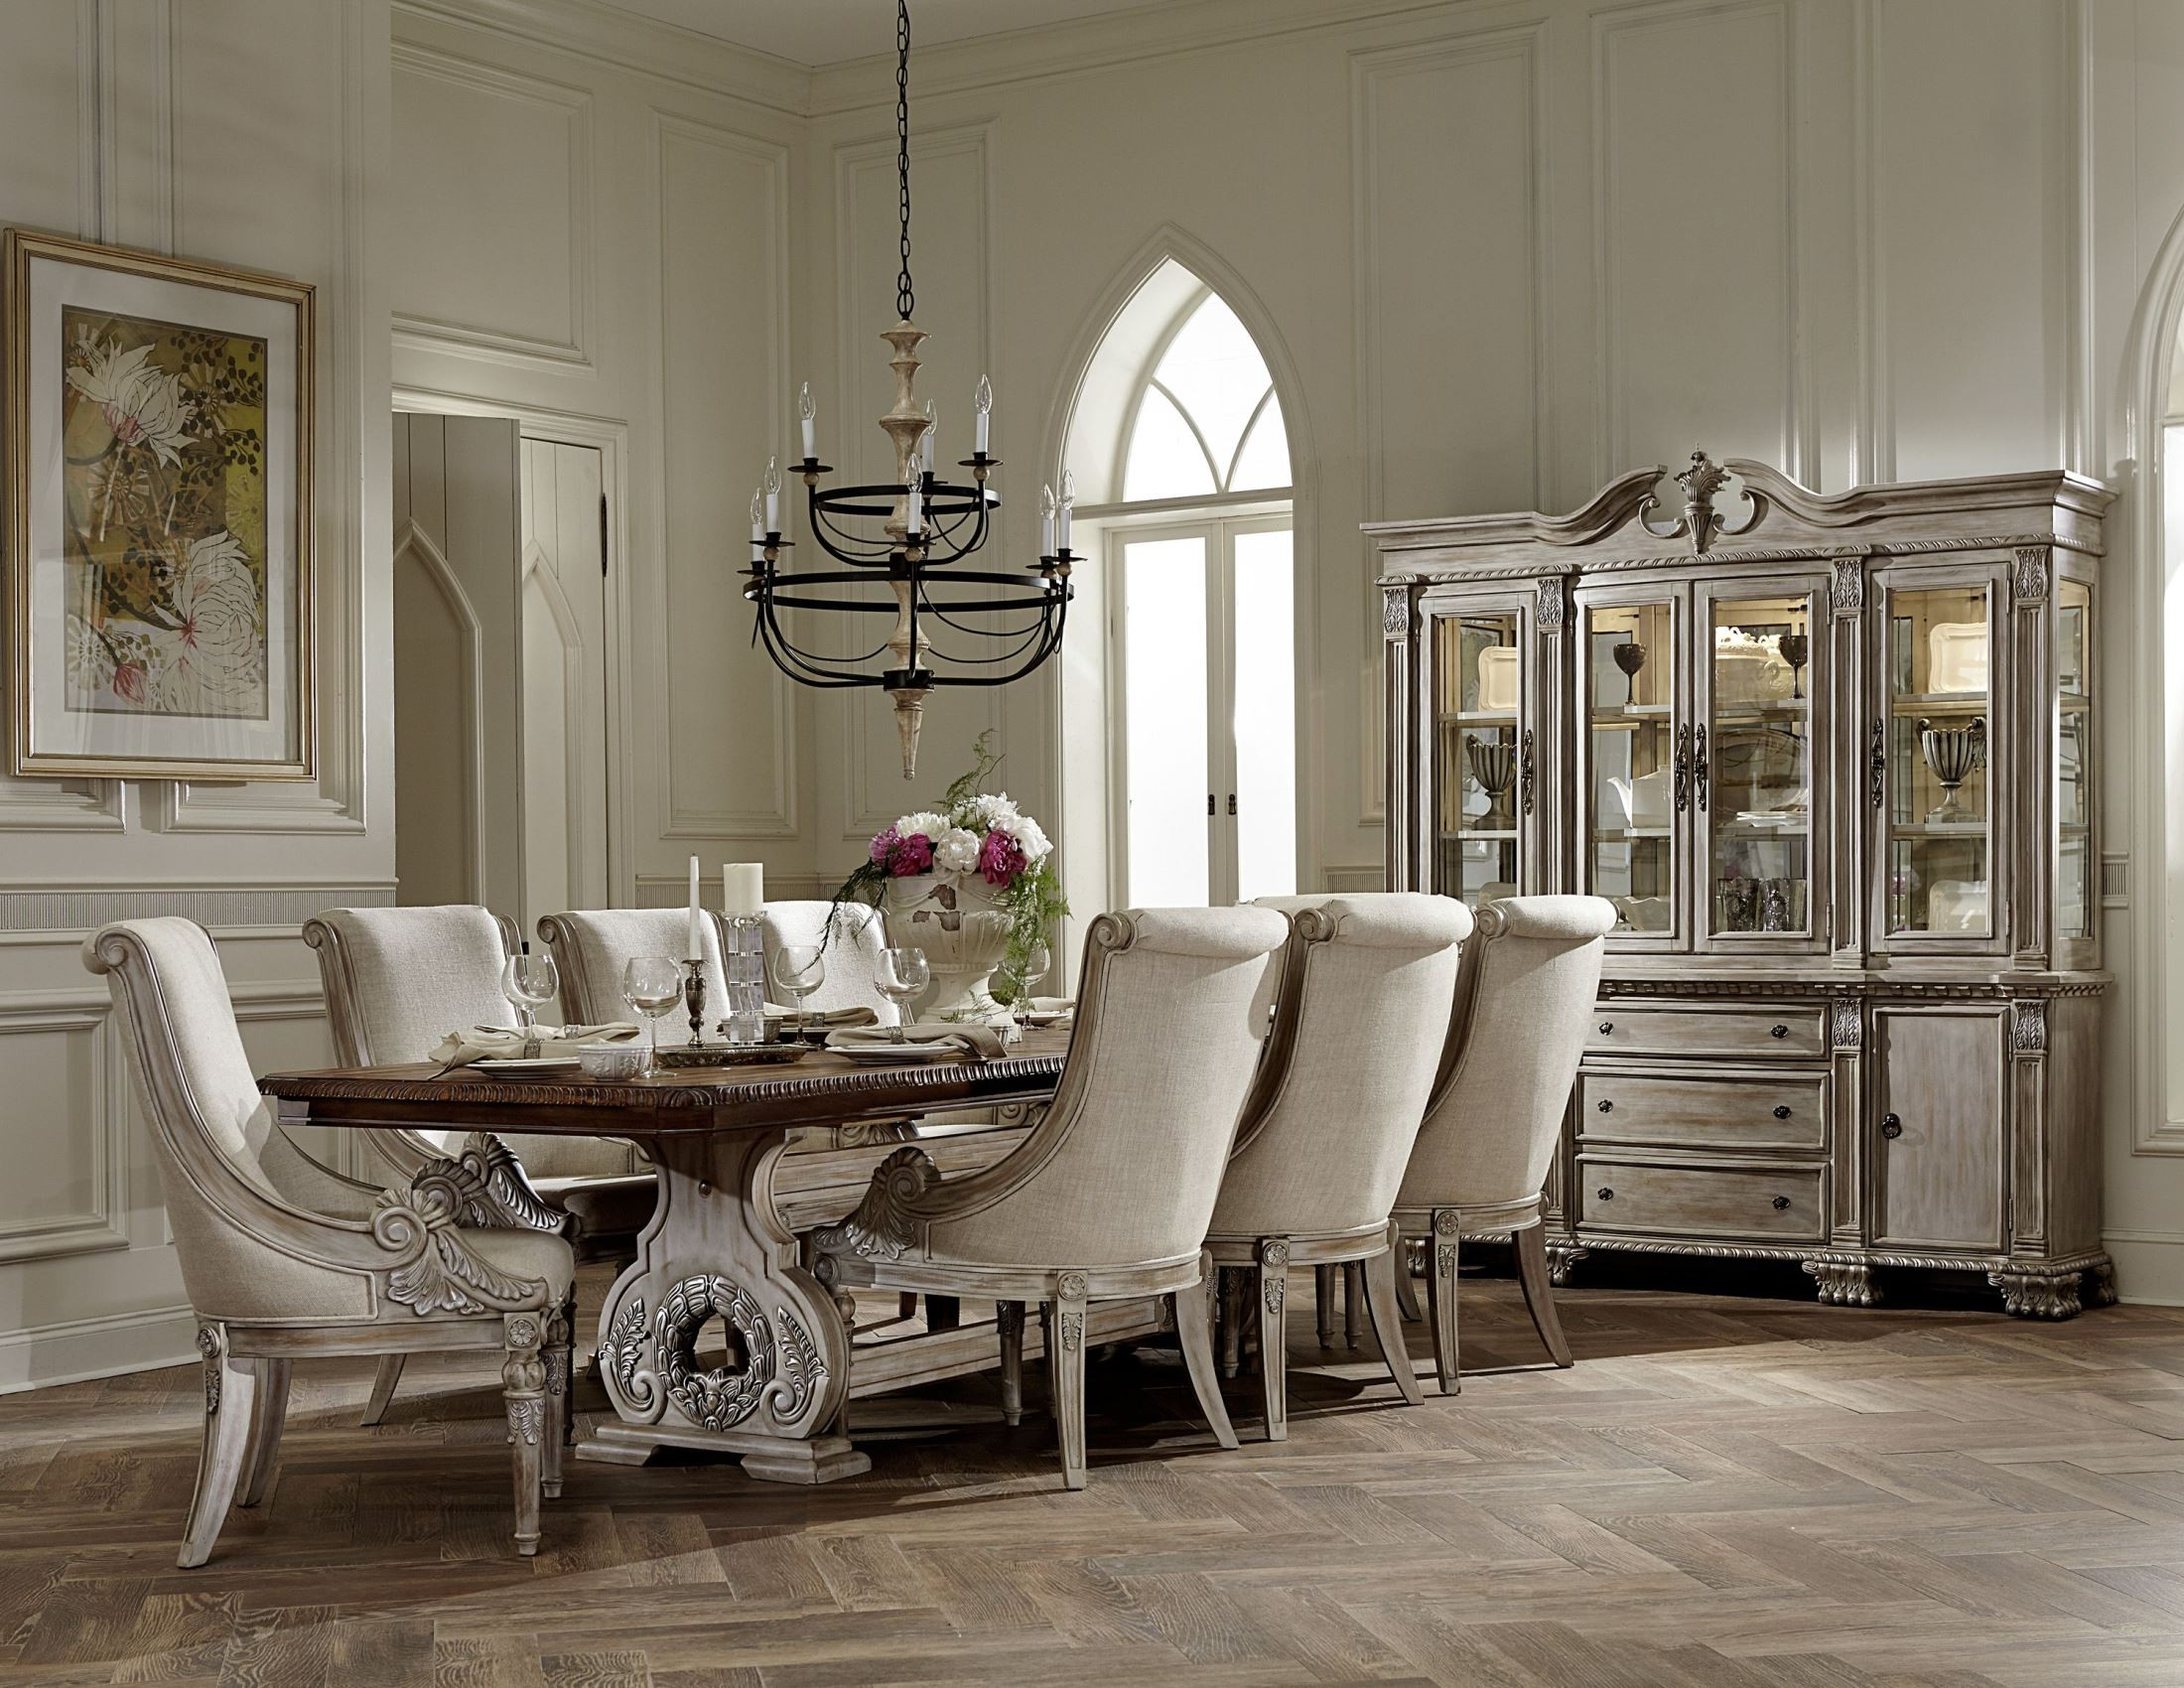 ... Dining Room Set. 1669347. 774118